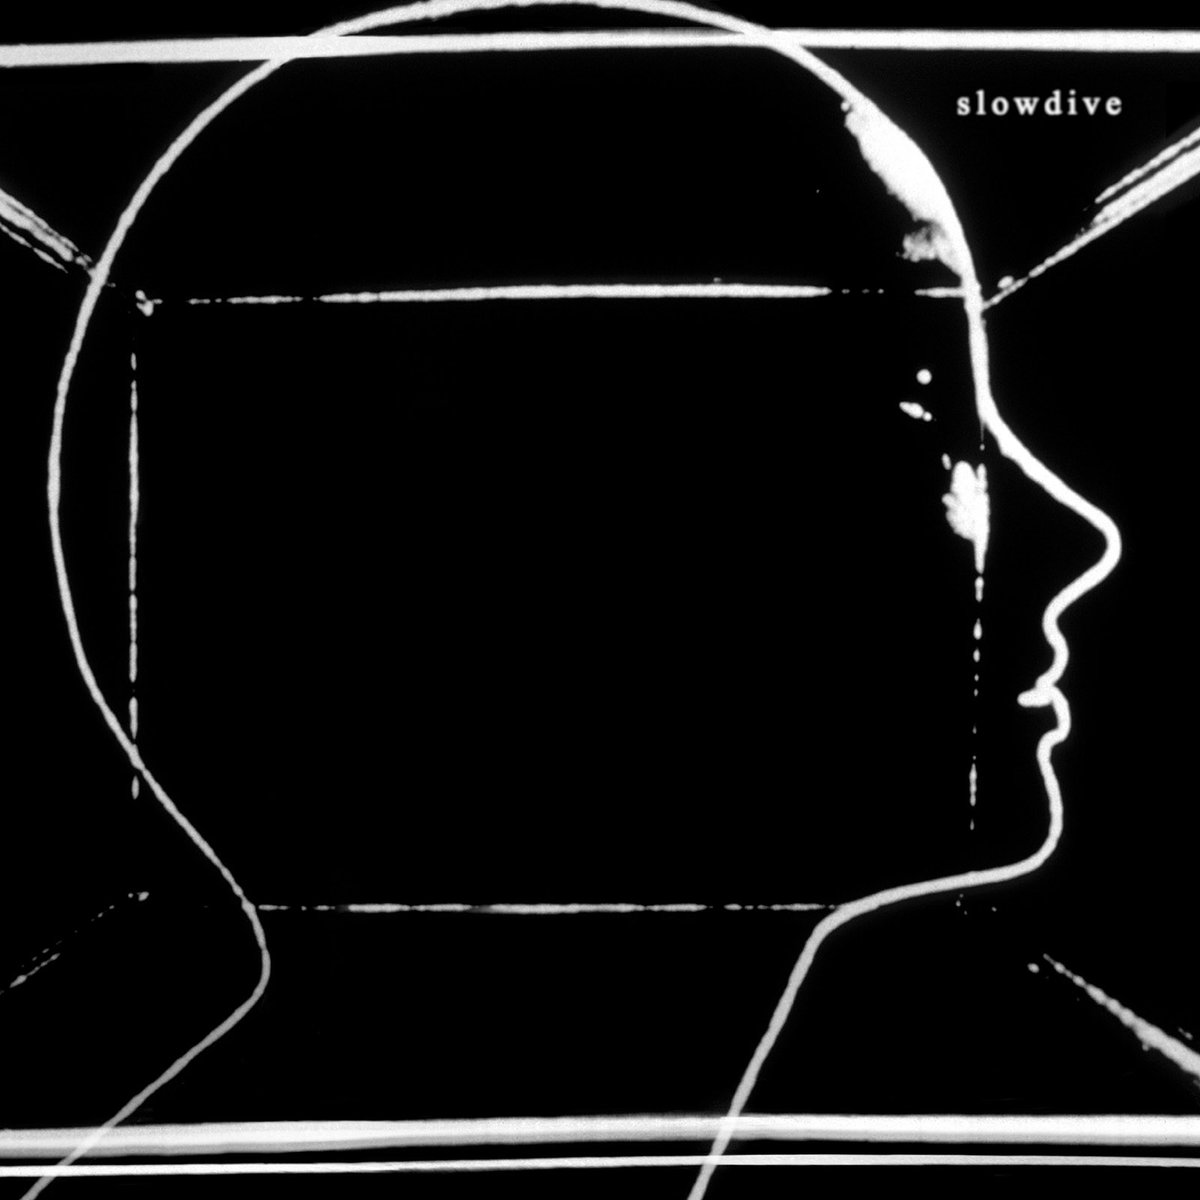 Slowdive-Cover-2017